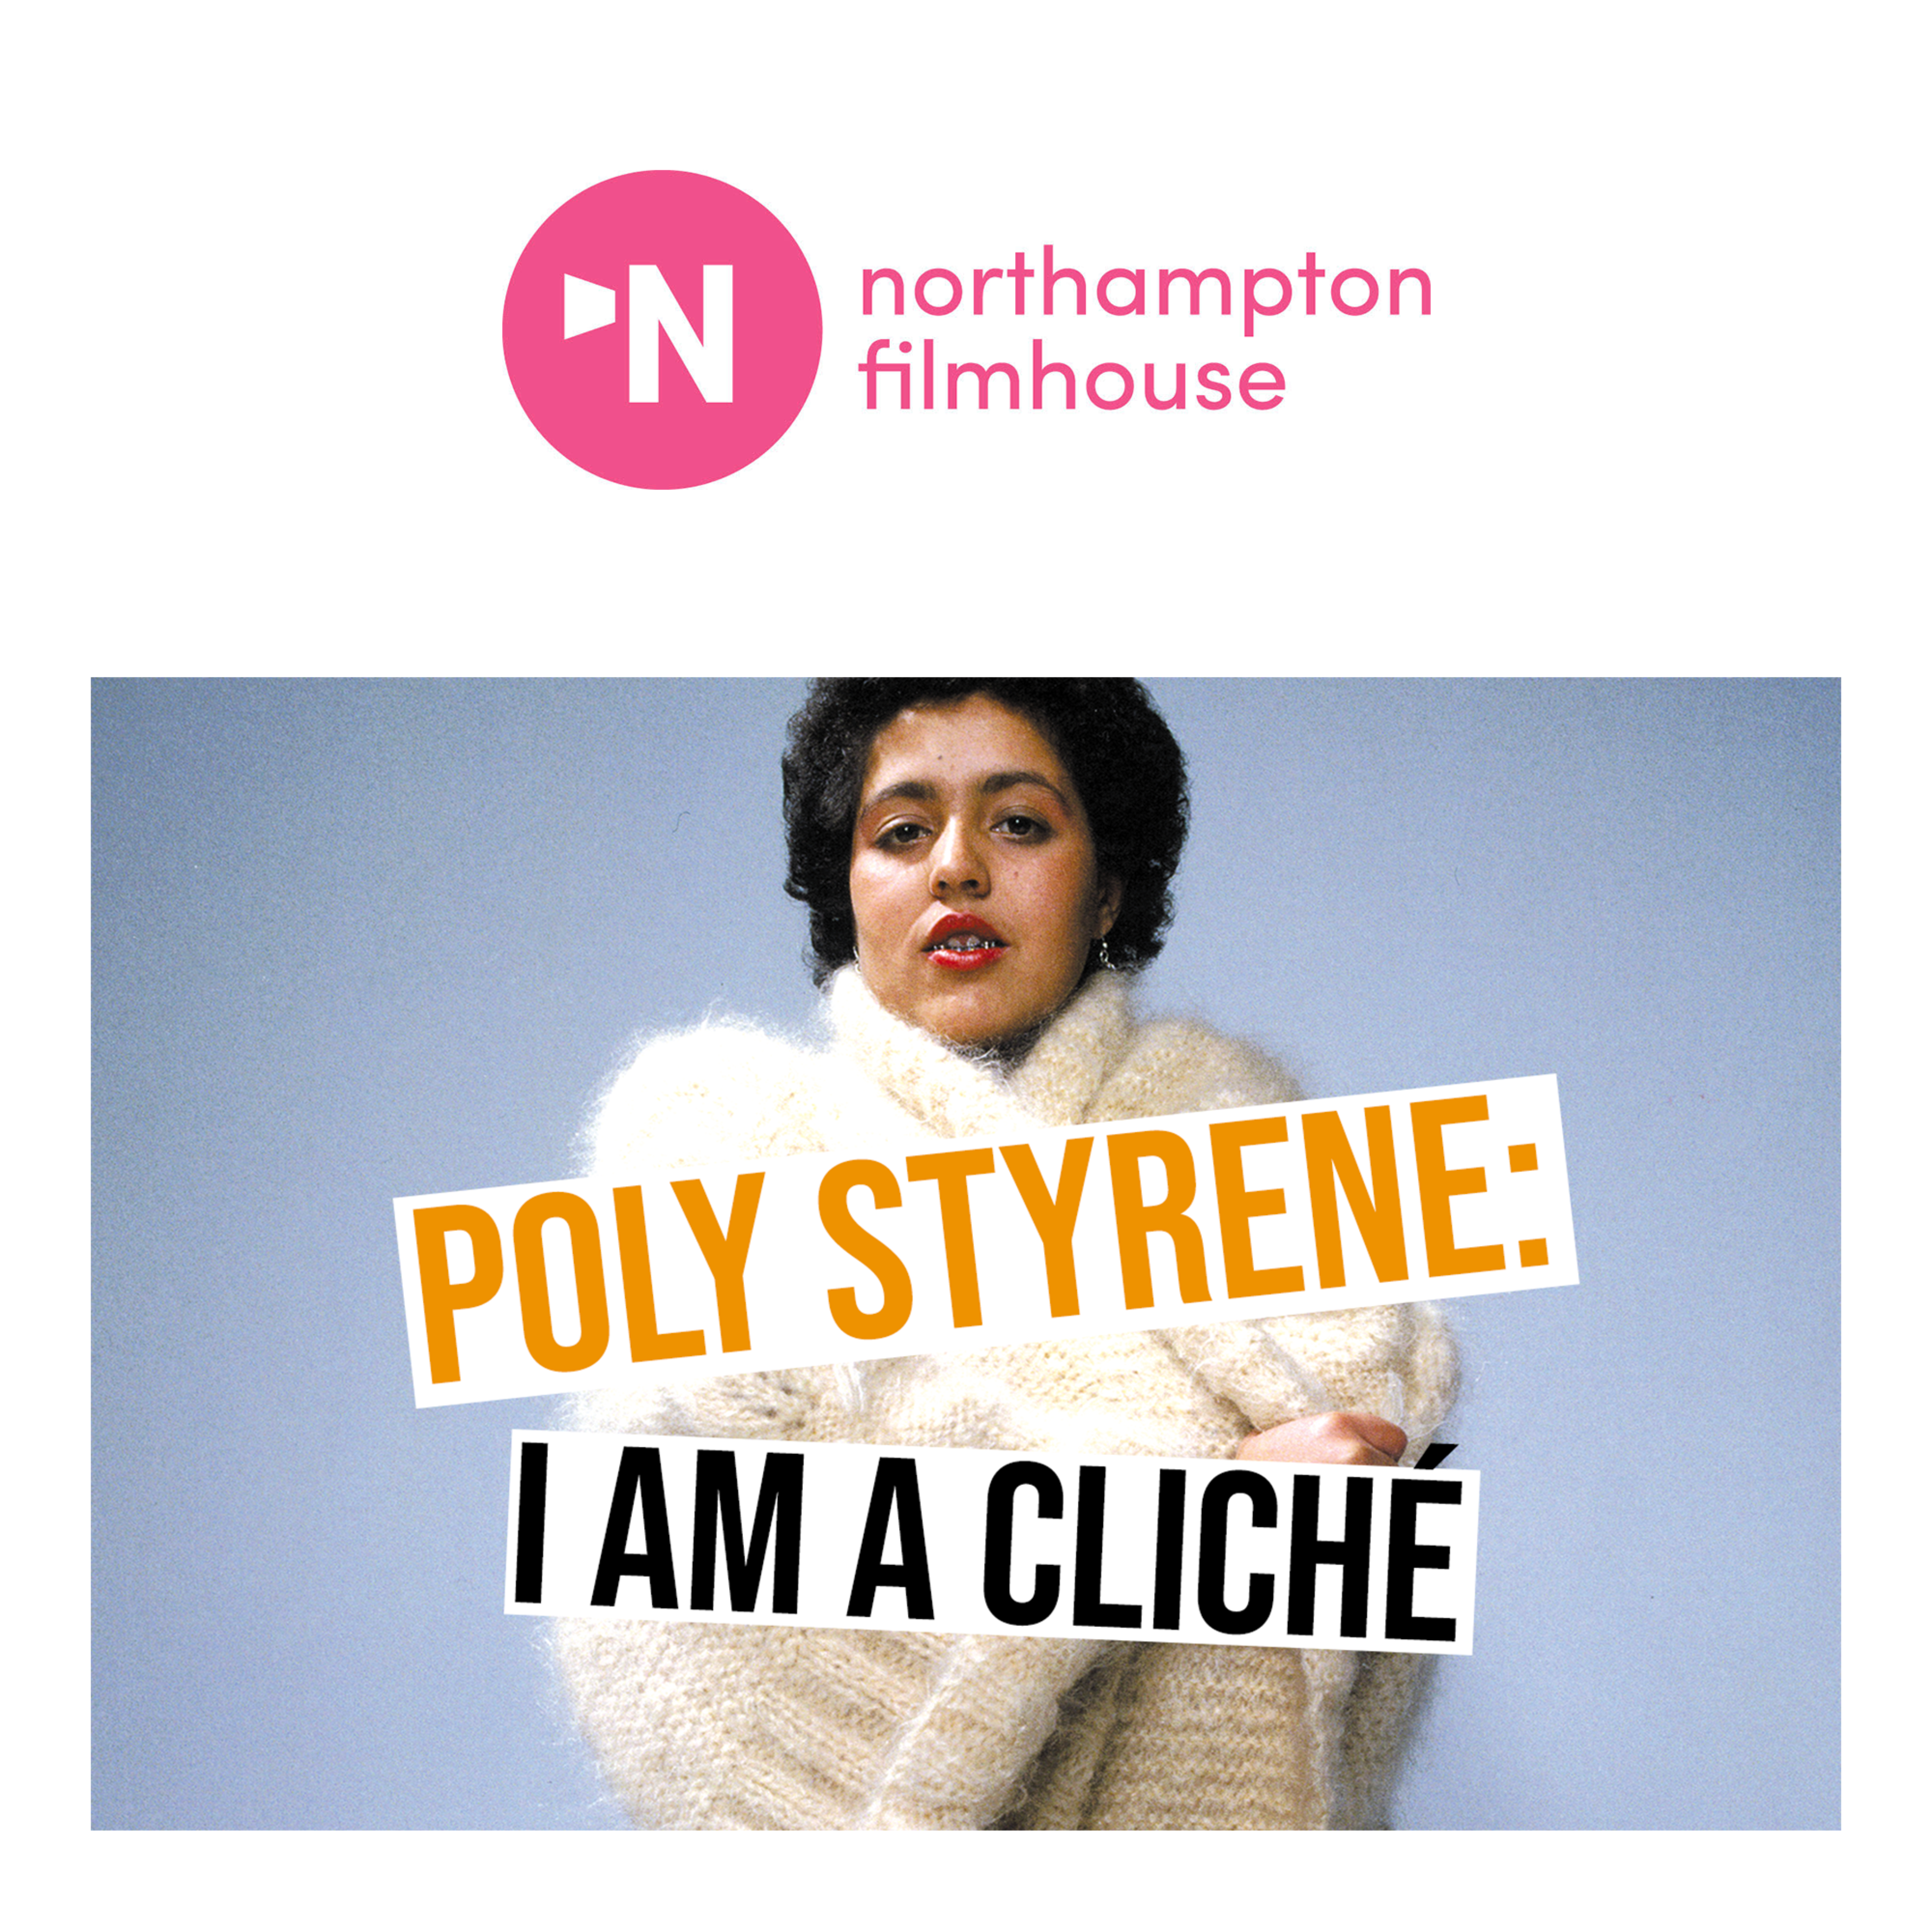 Poly Styrene: I Am a Cliché at Northampton Filmhouse